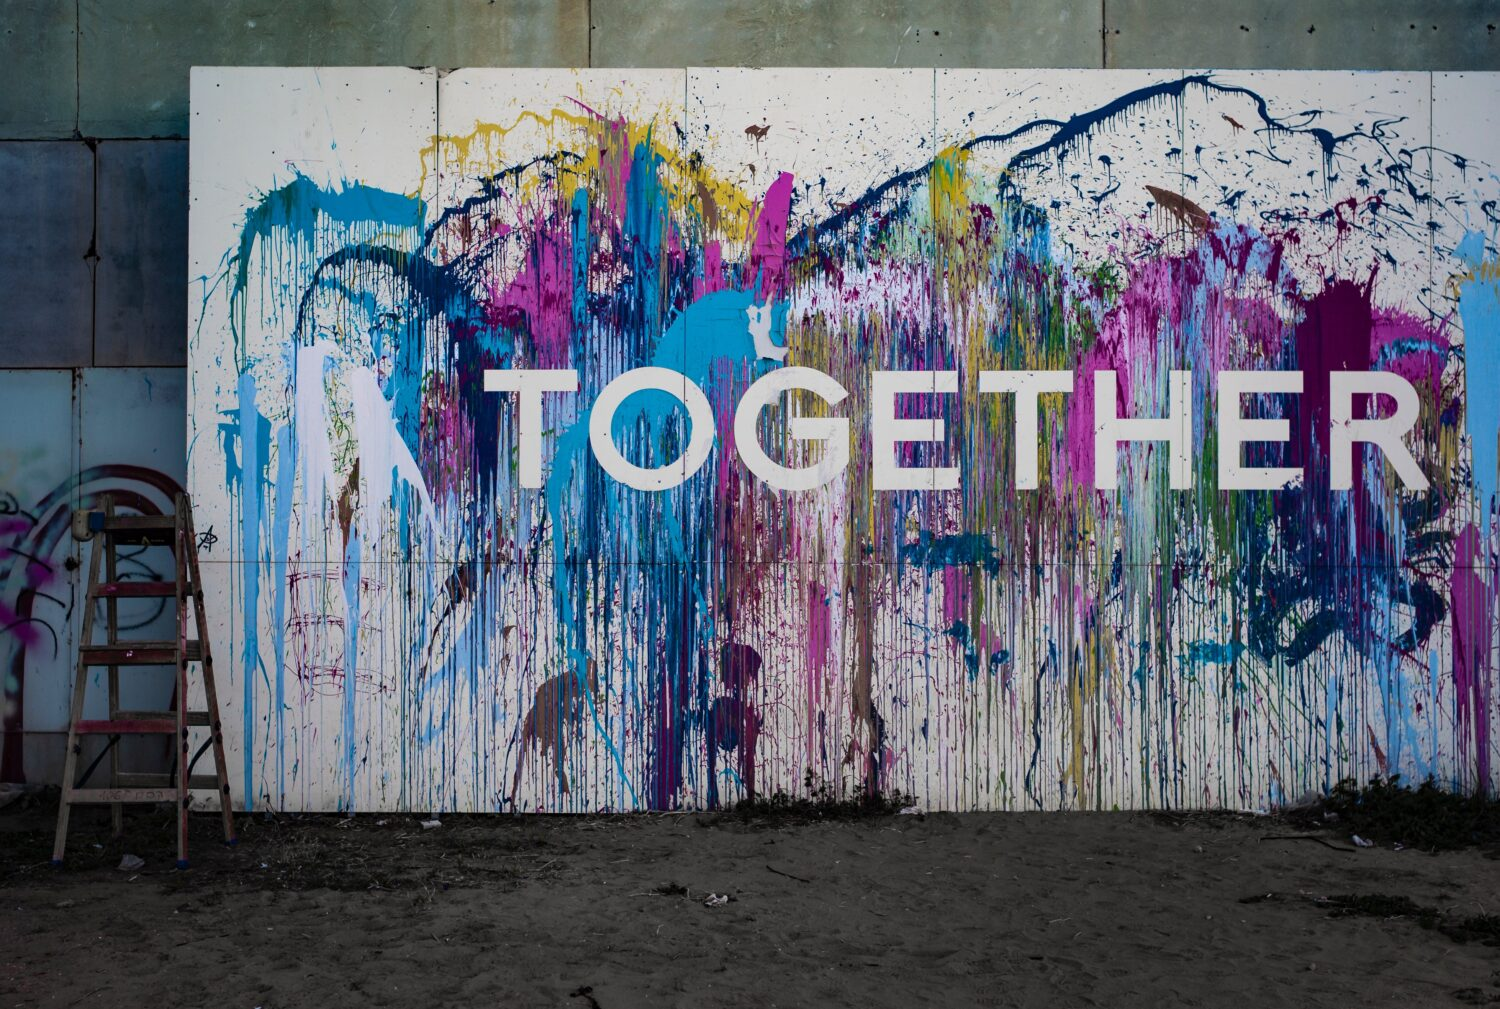 Together-adi-goldstein-unsplash